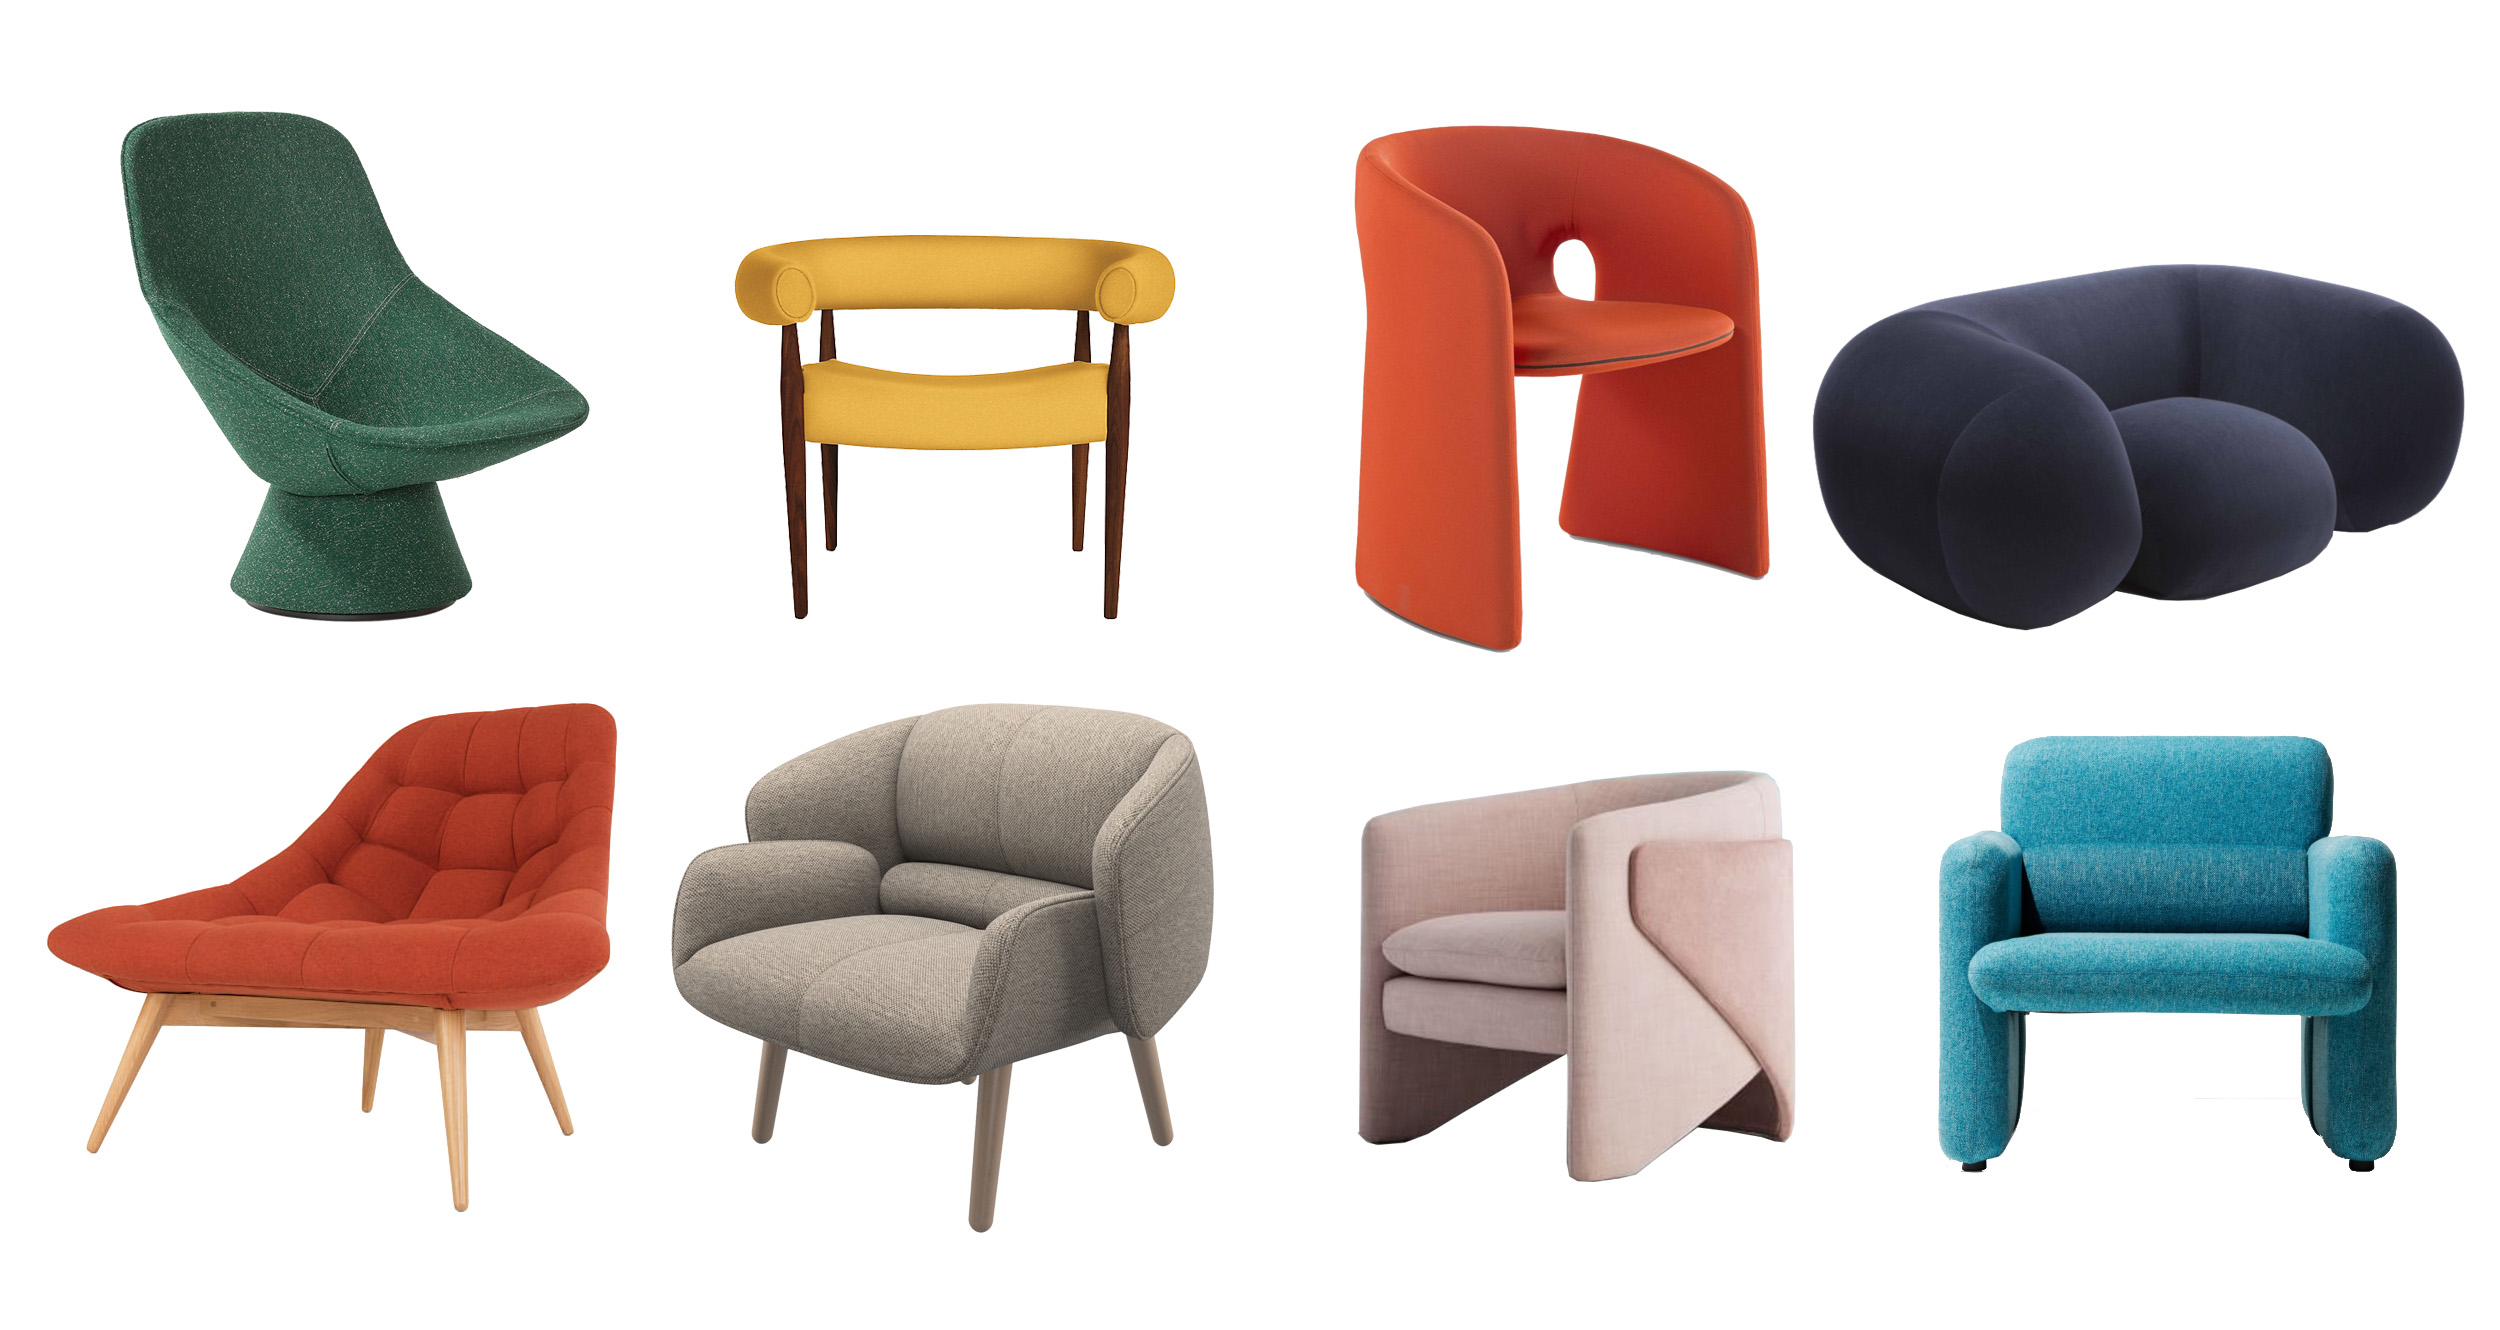 statement chairs, modern, designed, style, soft, furniture, interior design